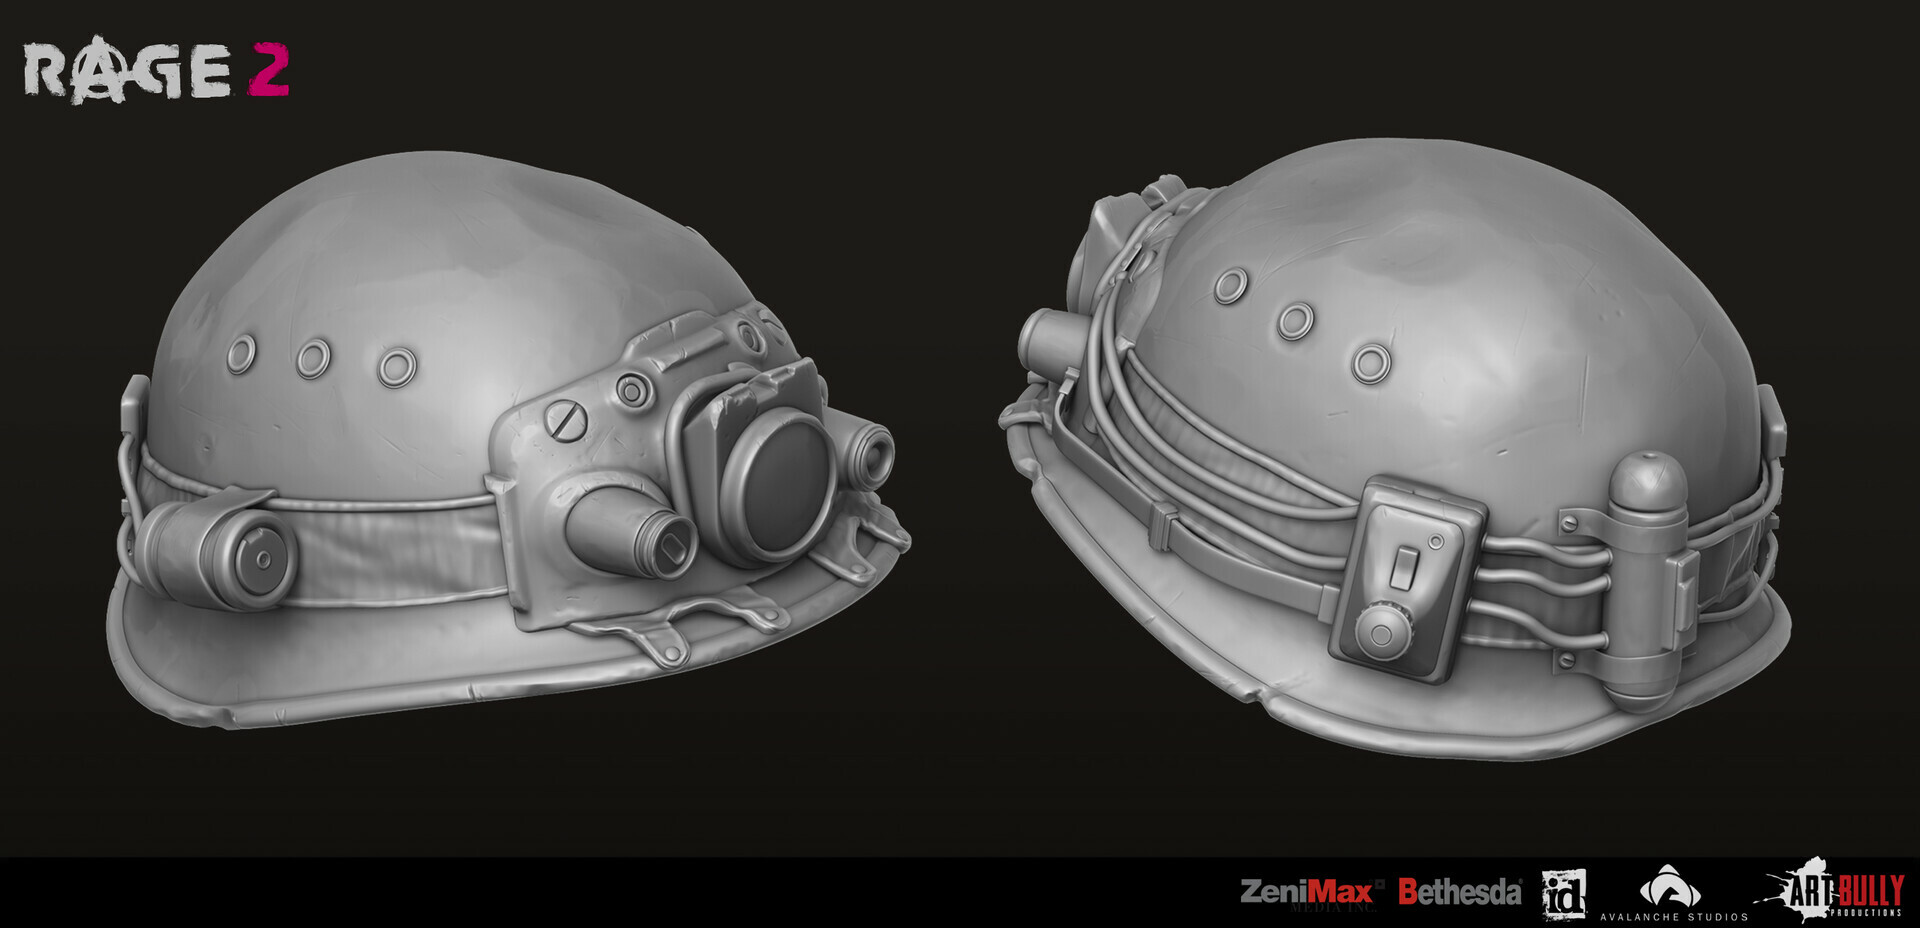 Patrick nuckels art bully productions civilian gear set 03 hex 03 miner helmet render